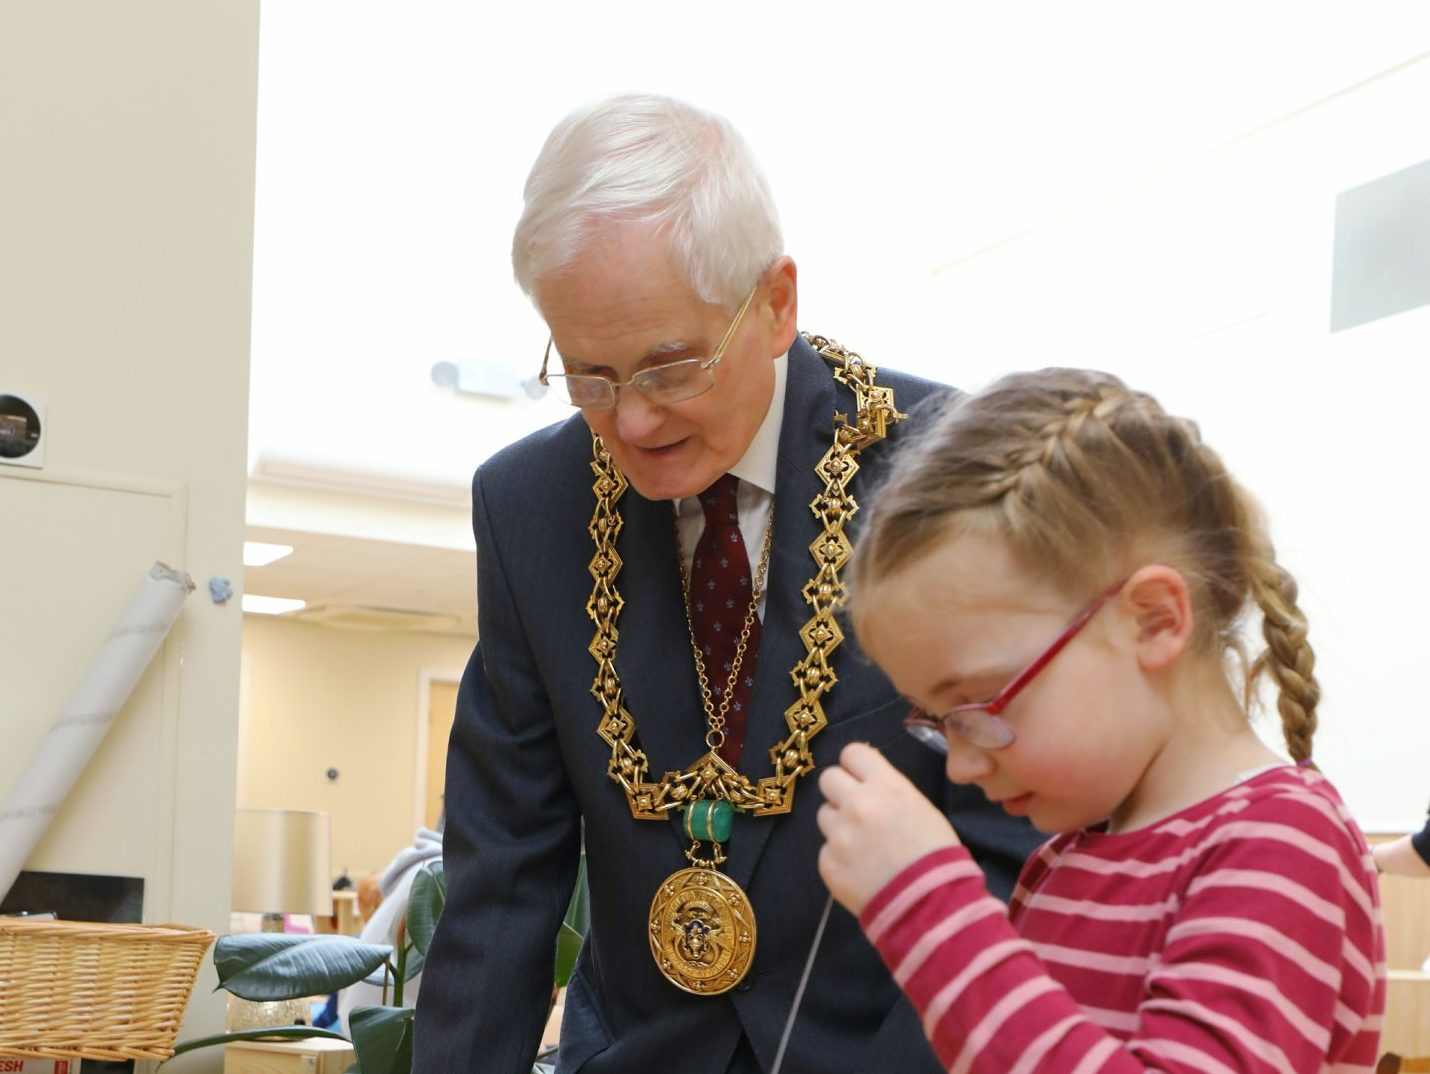 Lord Provost Ian Borthwick chats to some of the kids at the opening of the newly-refurbished Caird View Nursery, in Dundee on Friday.